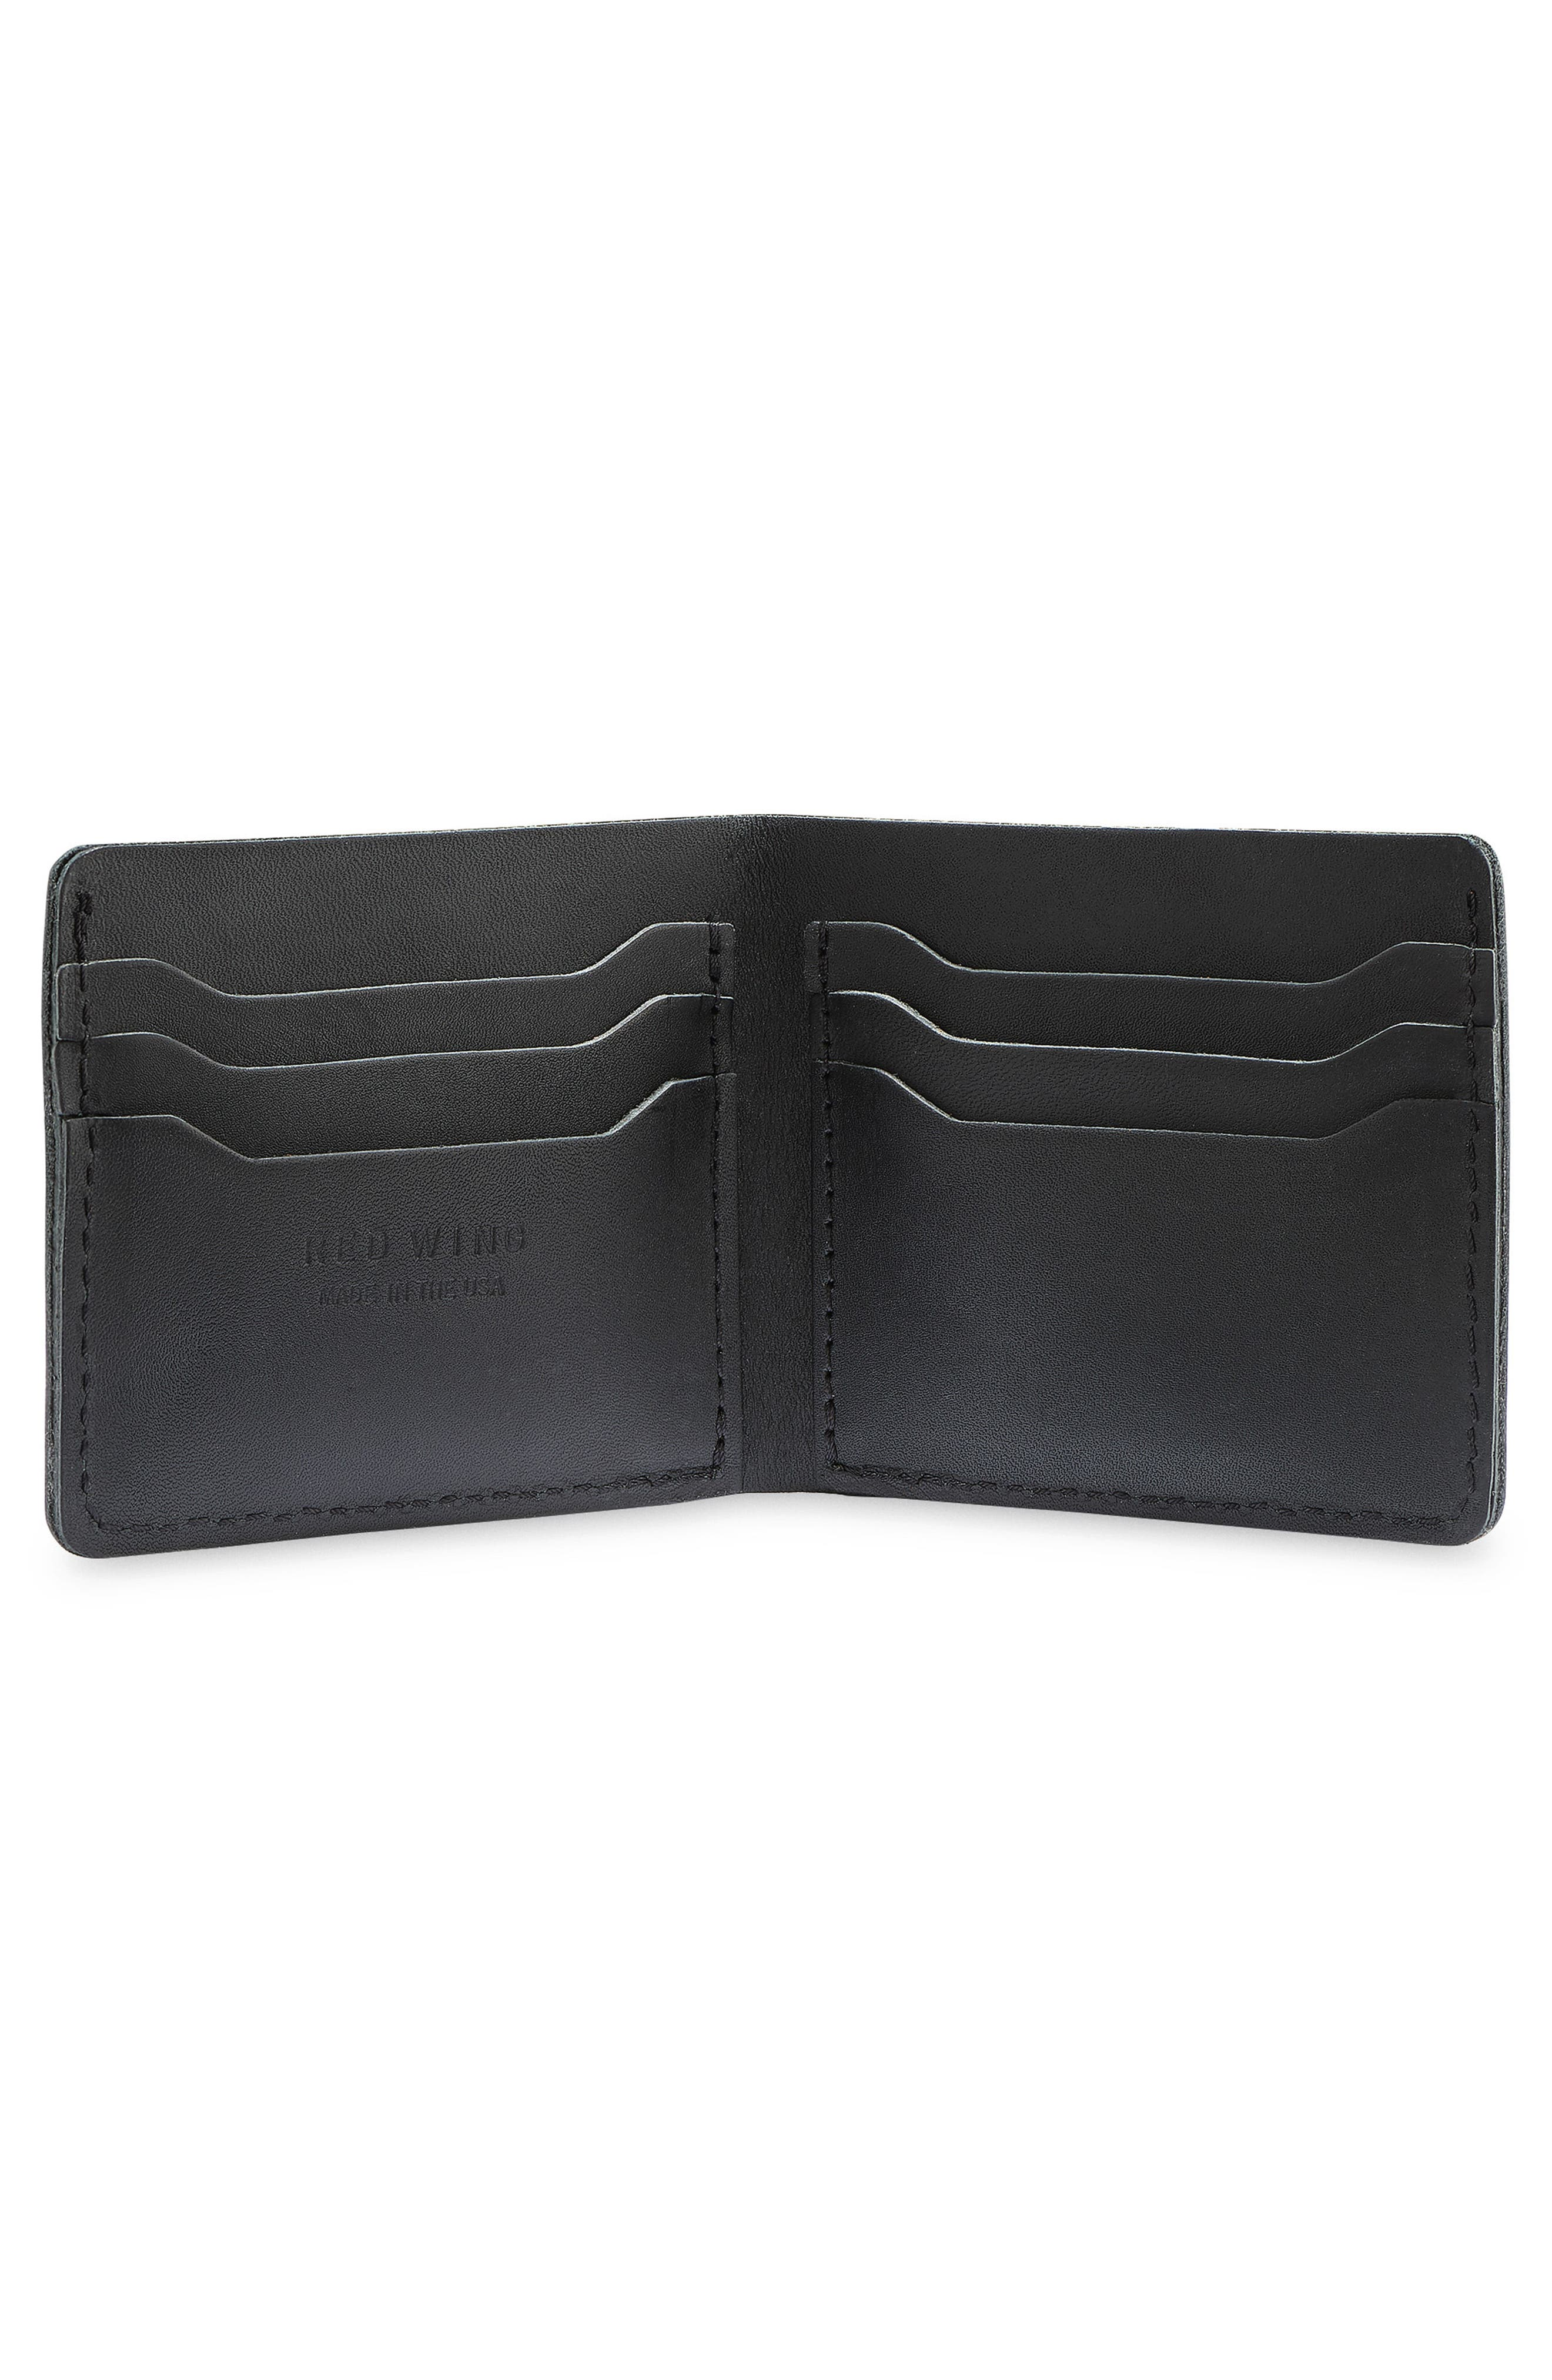 Classic Bifold Leather Wallet,                             Alternate thumbnail 2, color,                             BLACK